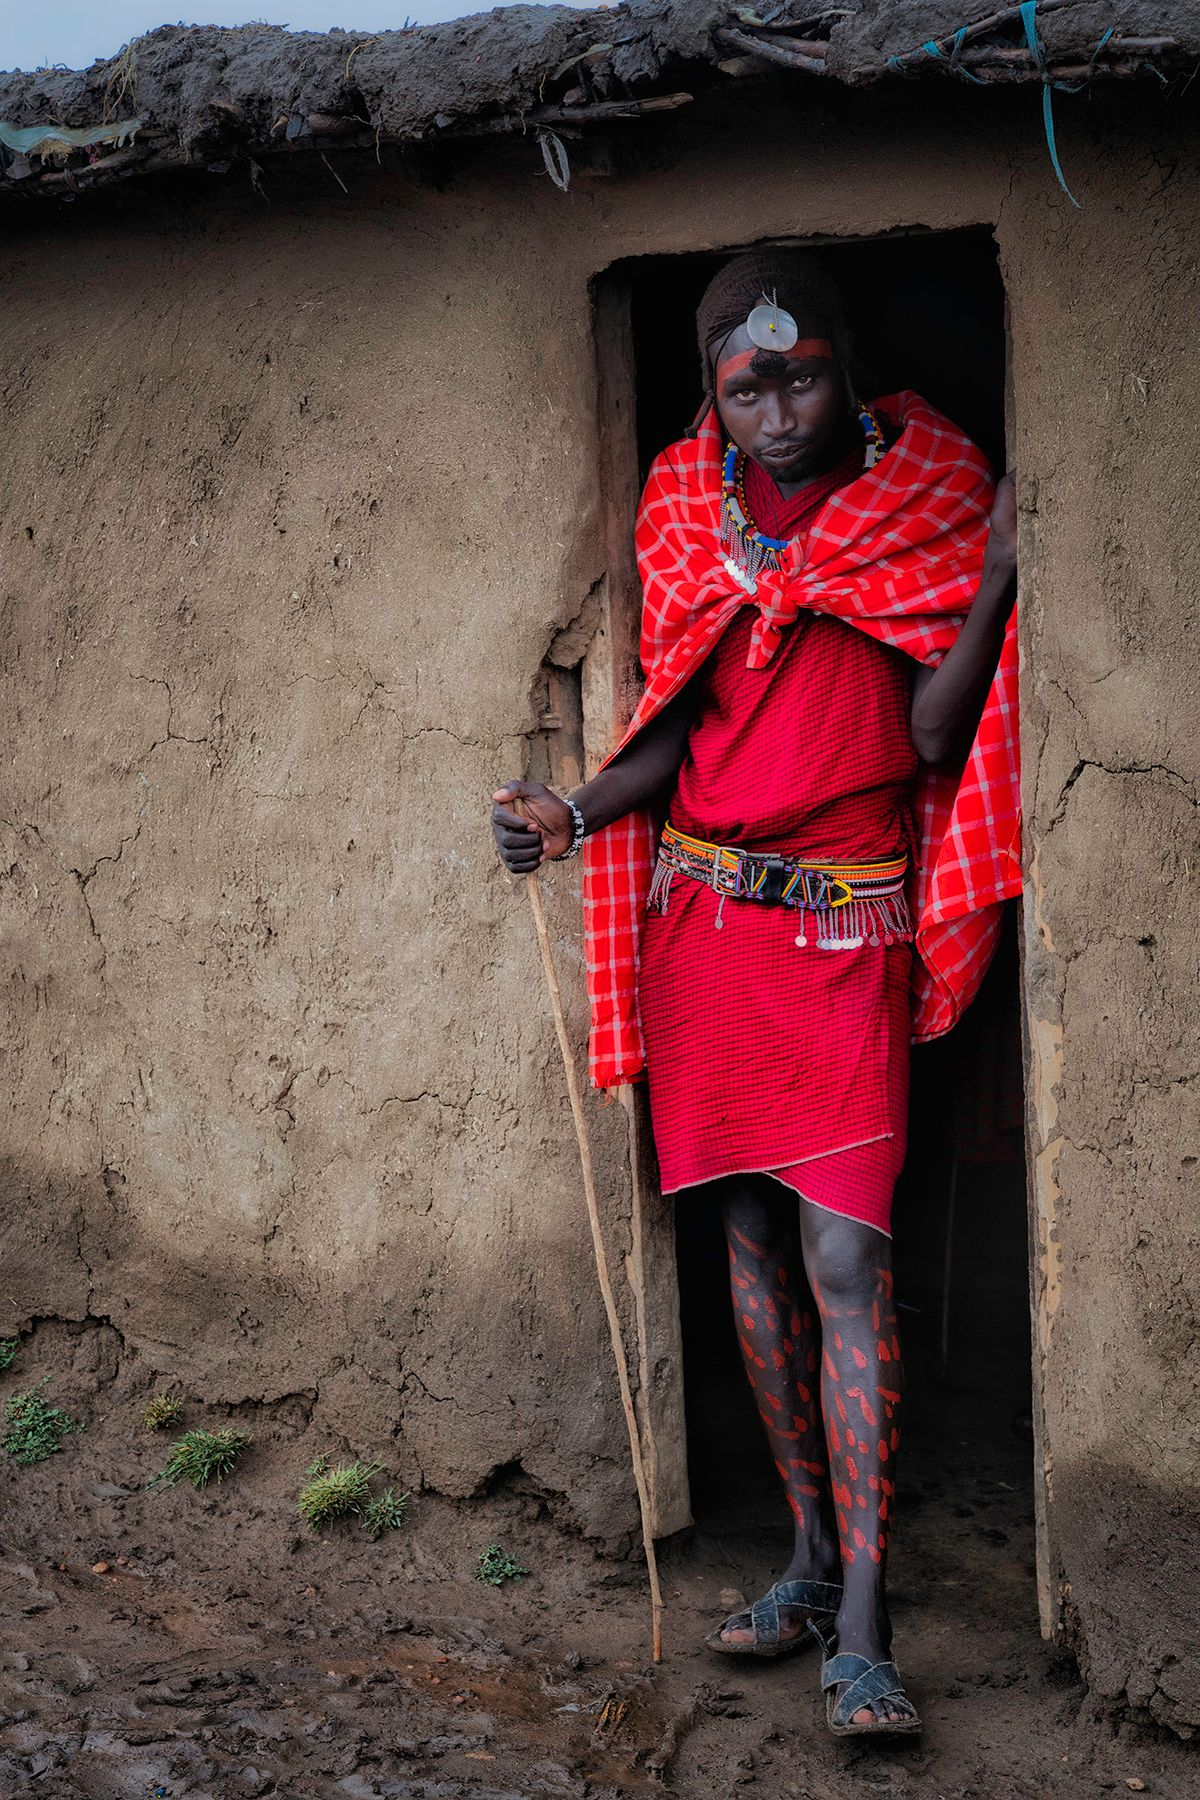 Masai man with painted legs